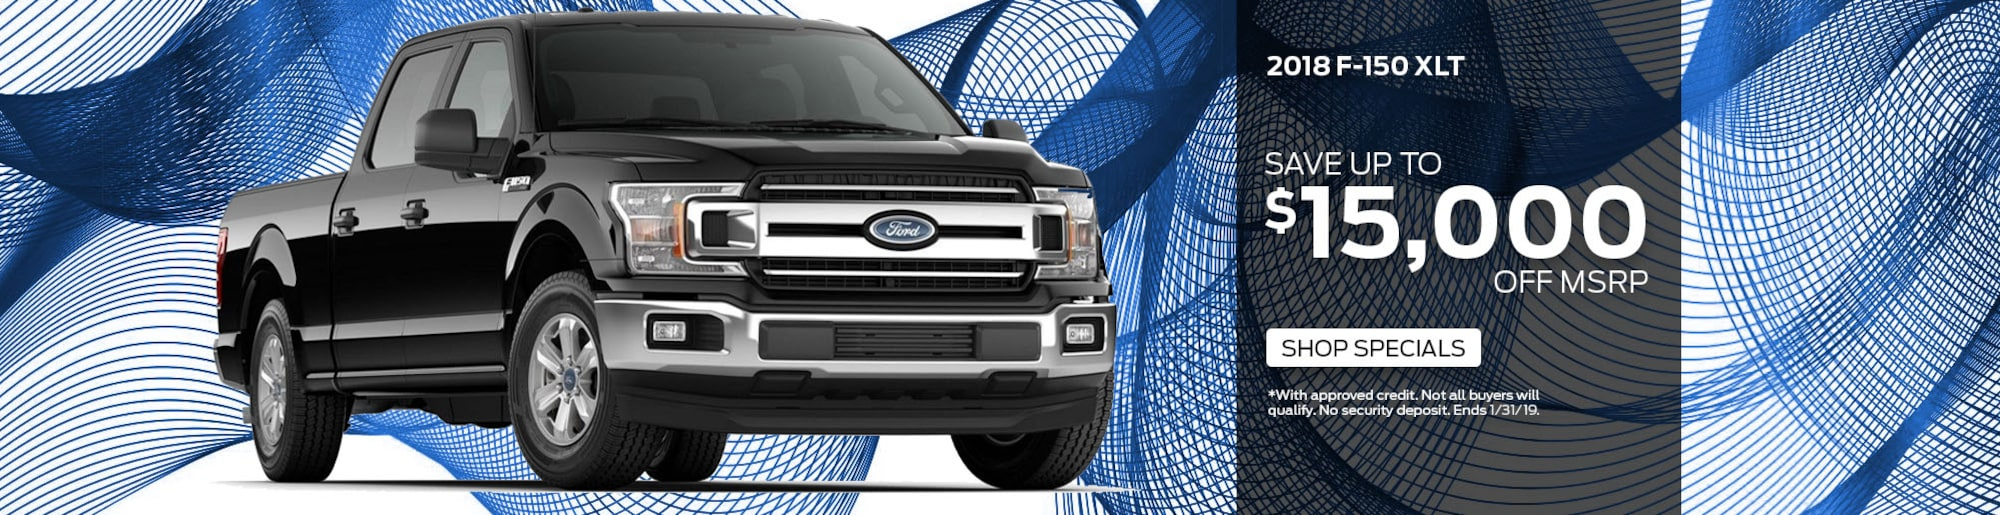 Welcome To Germain Ford Of Columbus Ohio Sales 2007 Explorer Fuel Filter Location New Specials